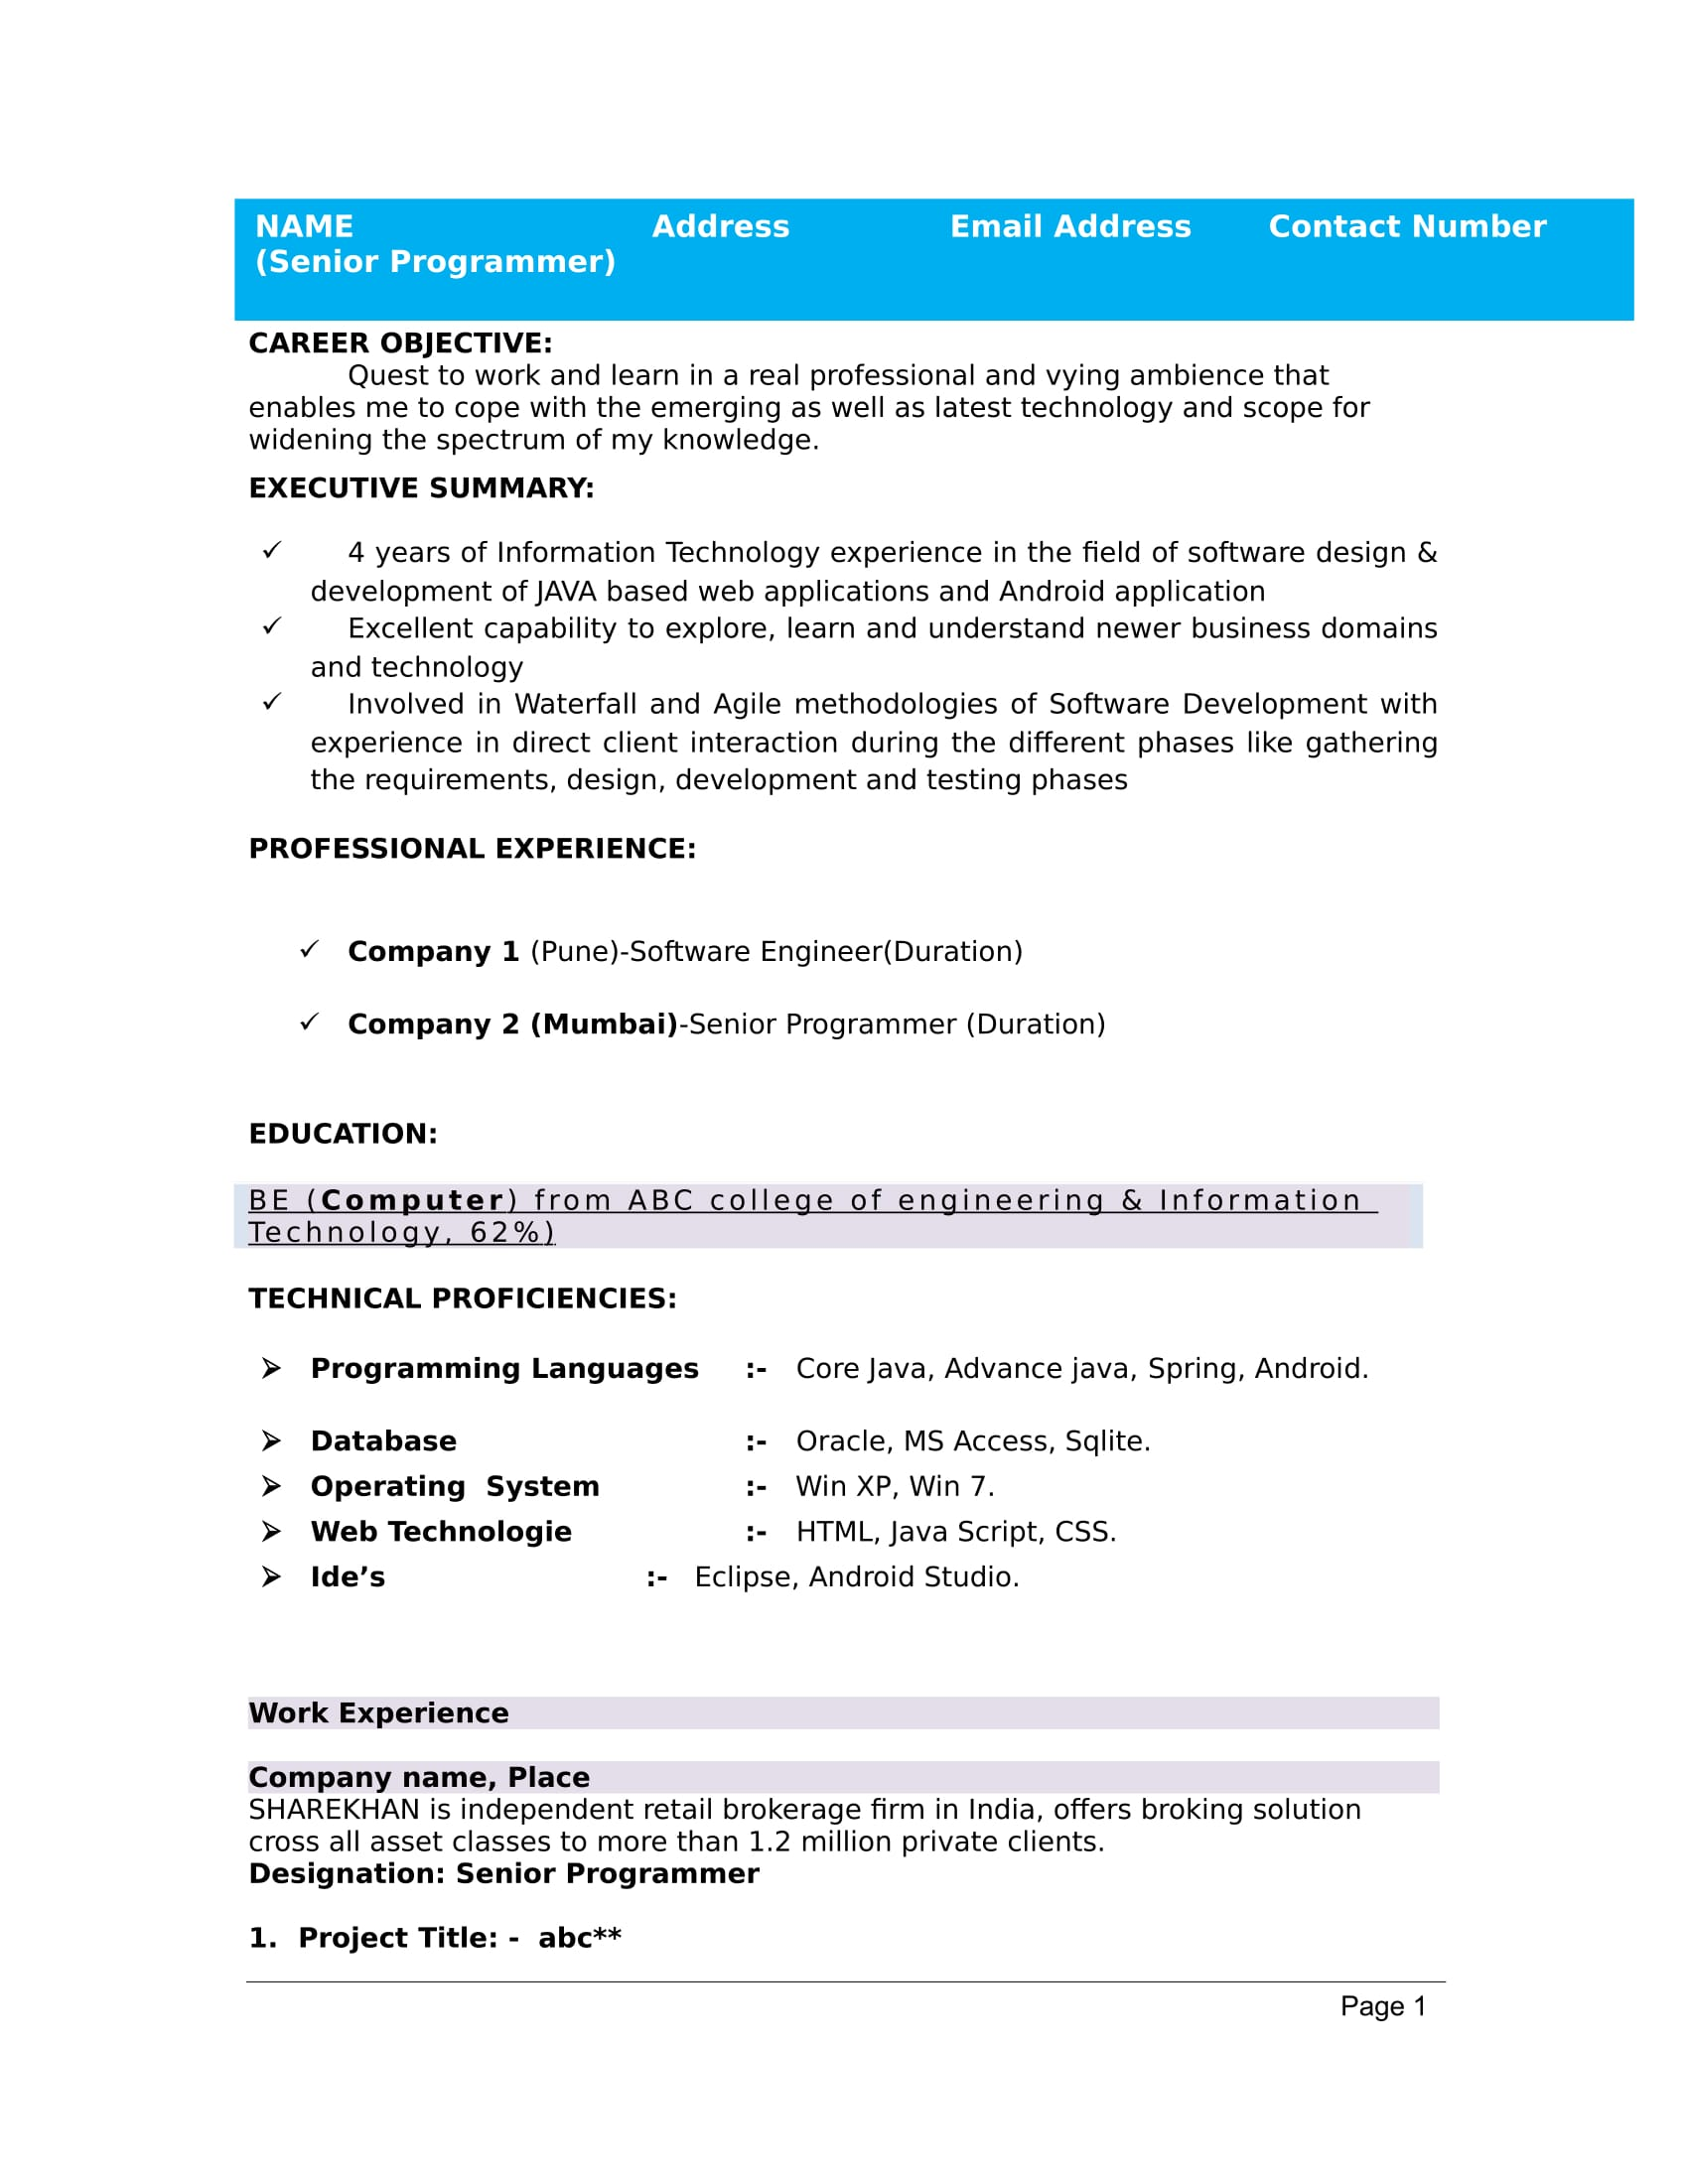 Indian Resume Format For Freshers Engineers 32 43 Resume Templates For Freshers Download Free Word Format